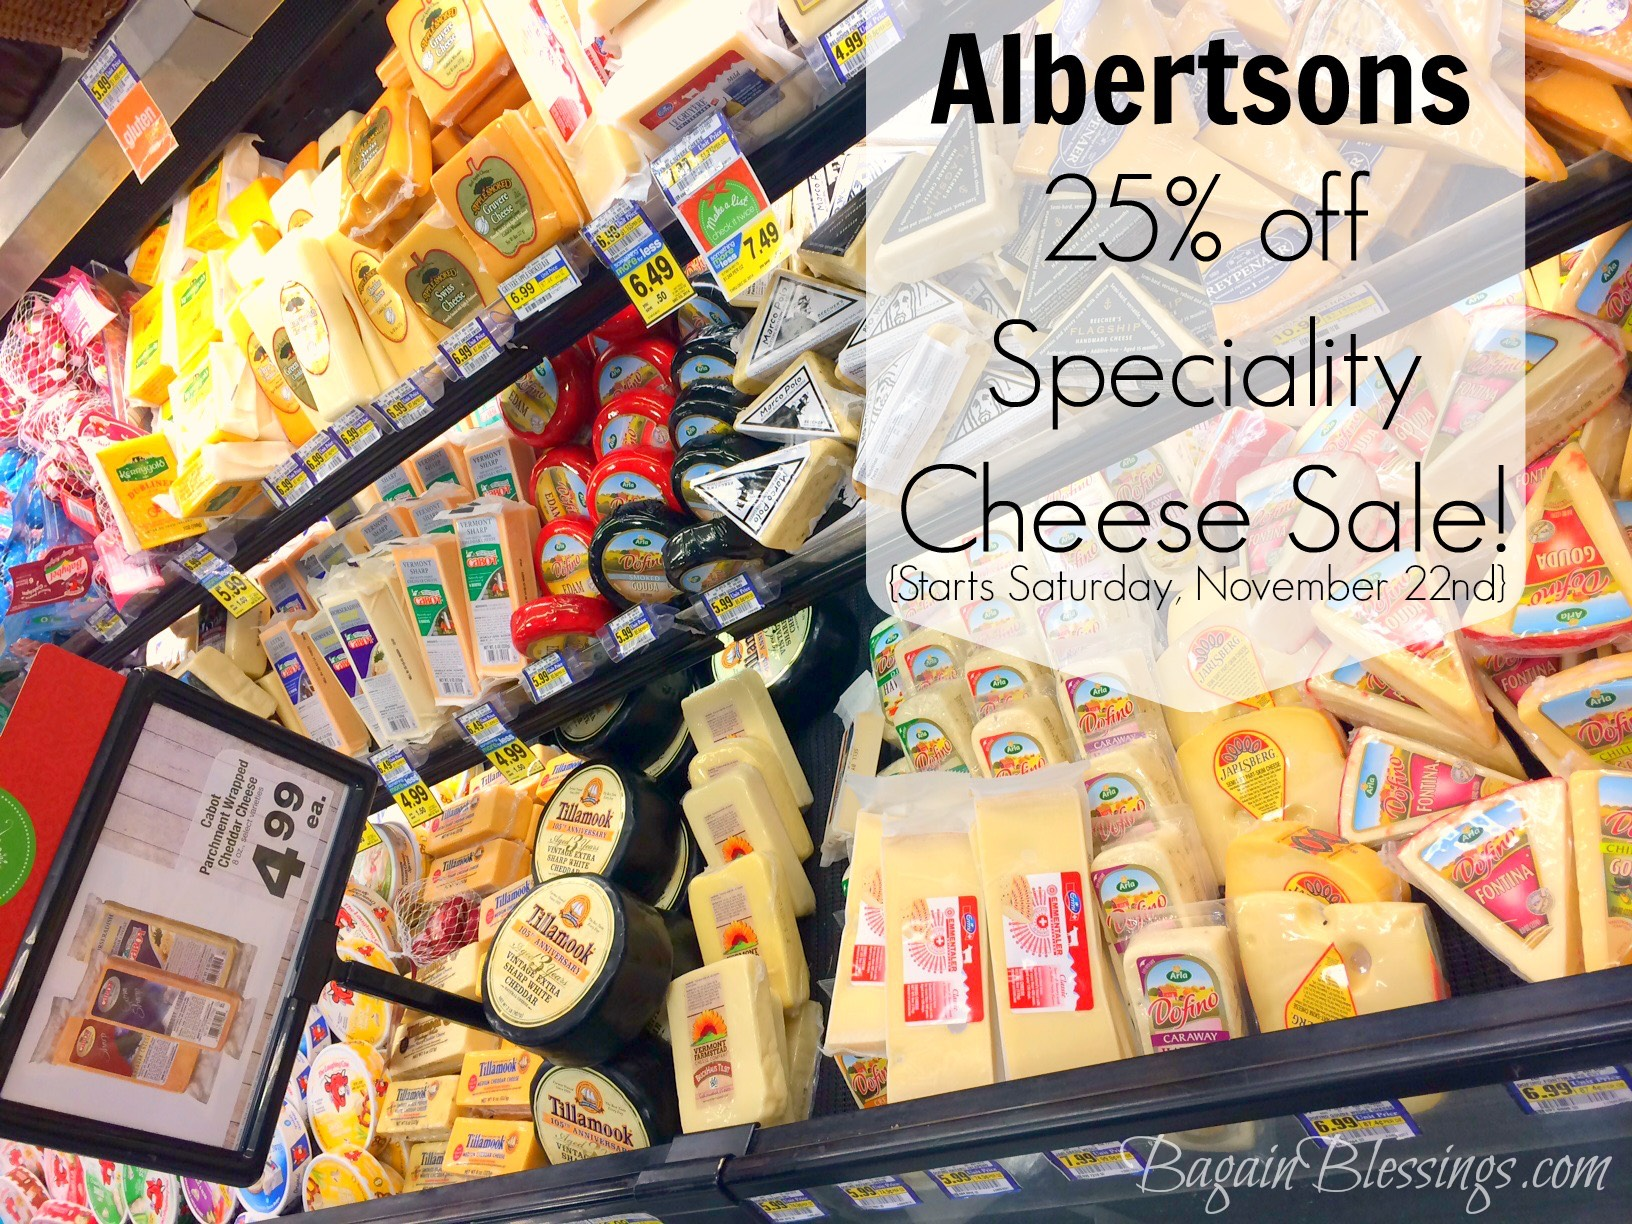 albertsons-25-off-cheese-sale